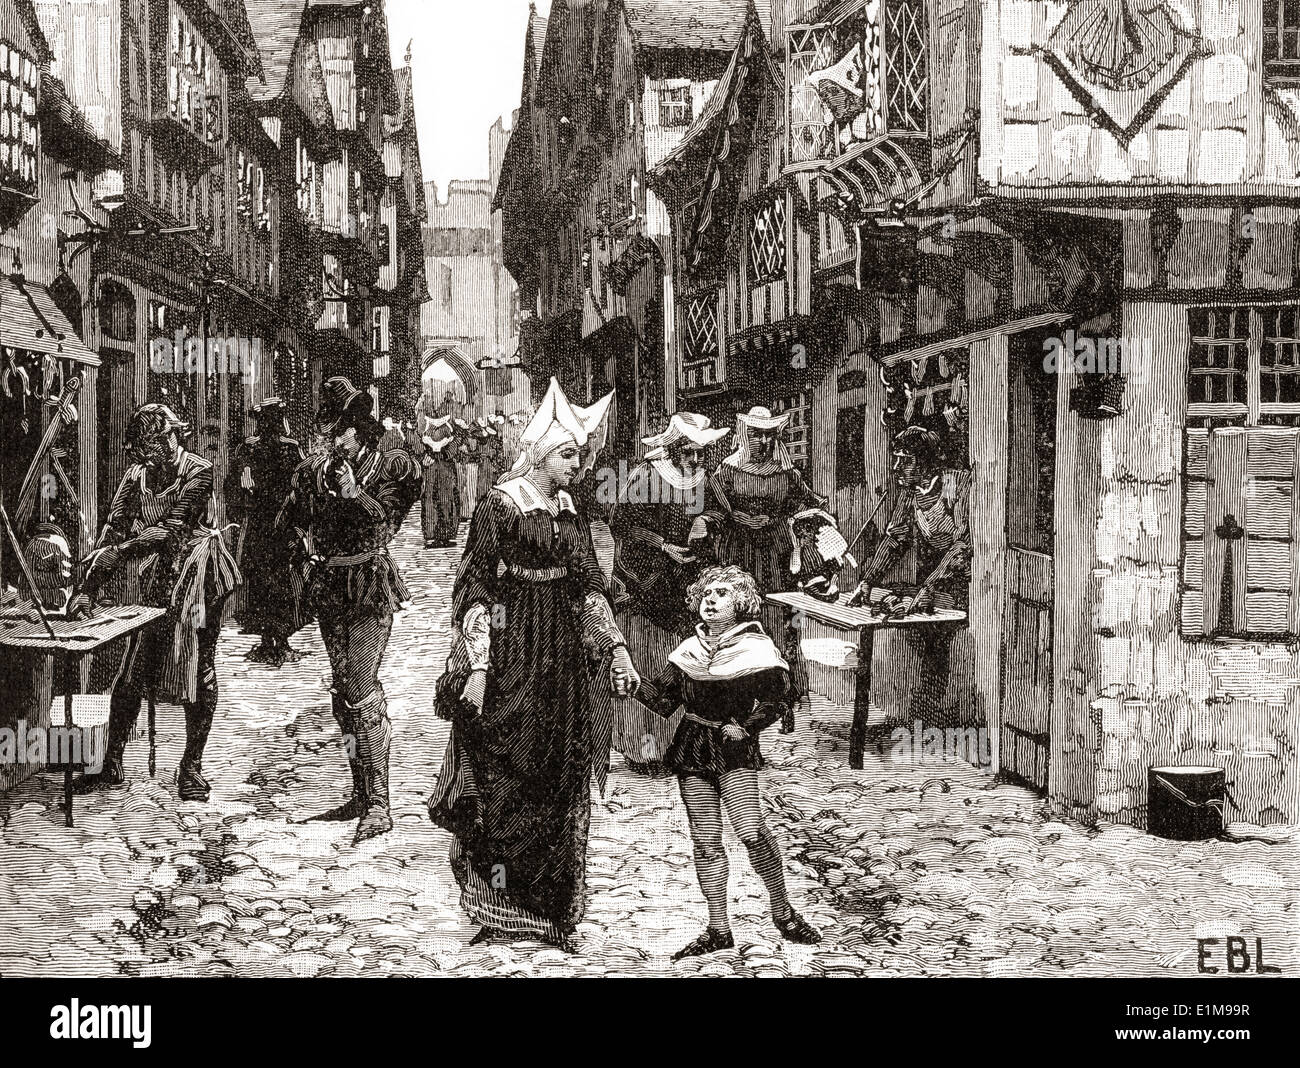 A London Street during the 15th century. - Stock Image